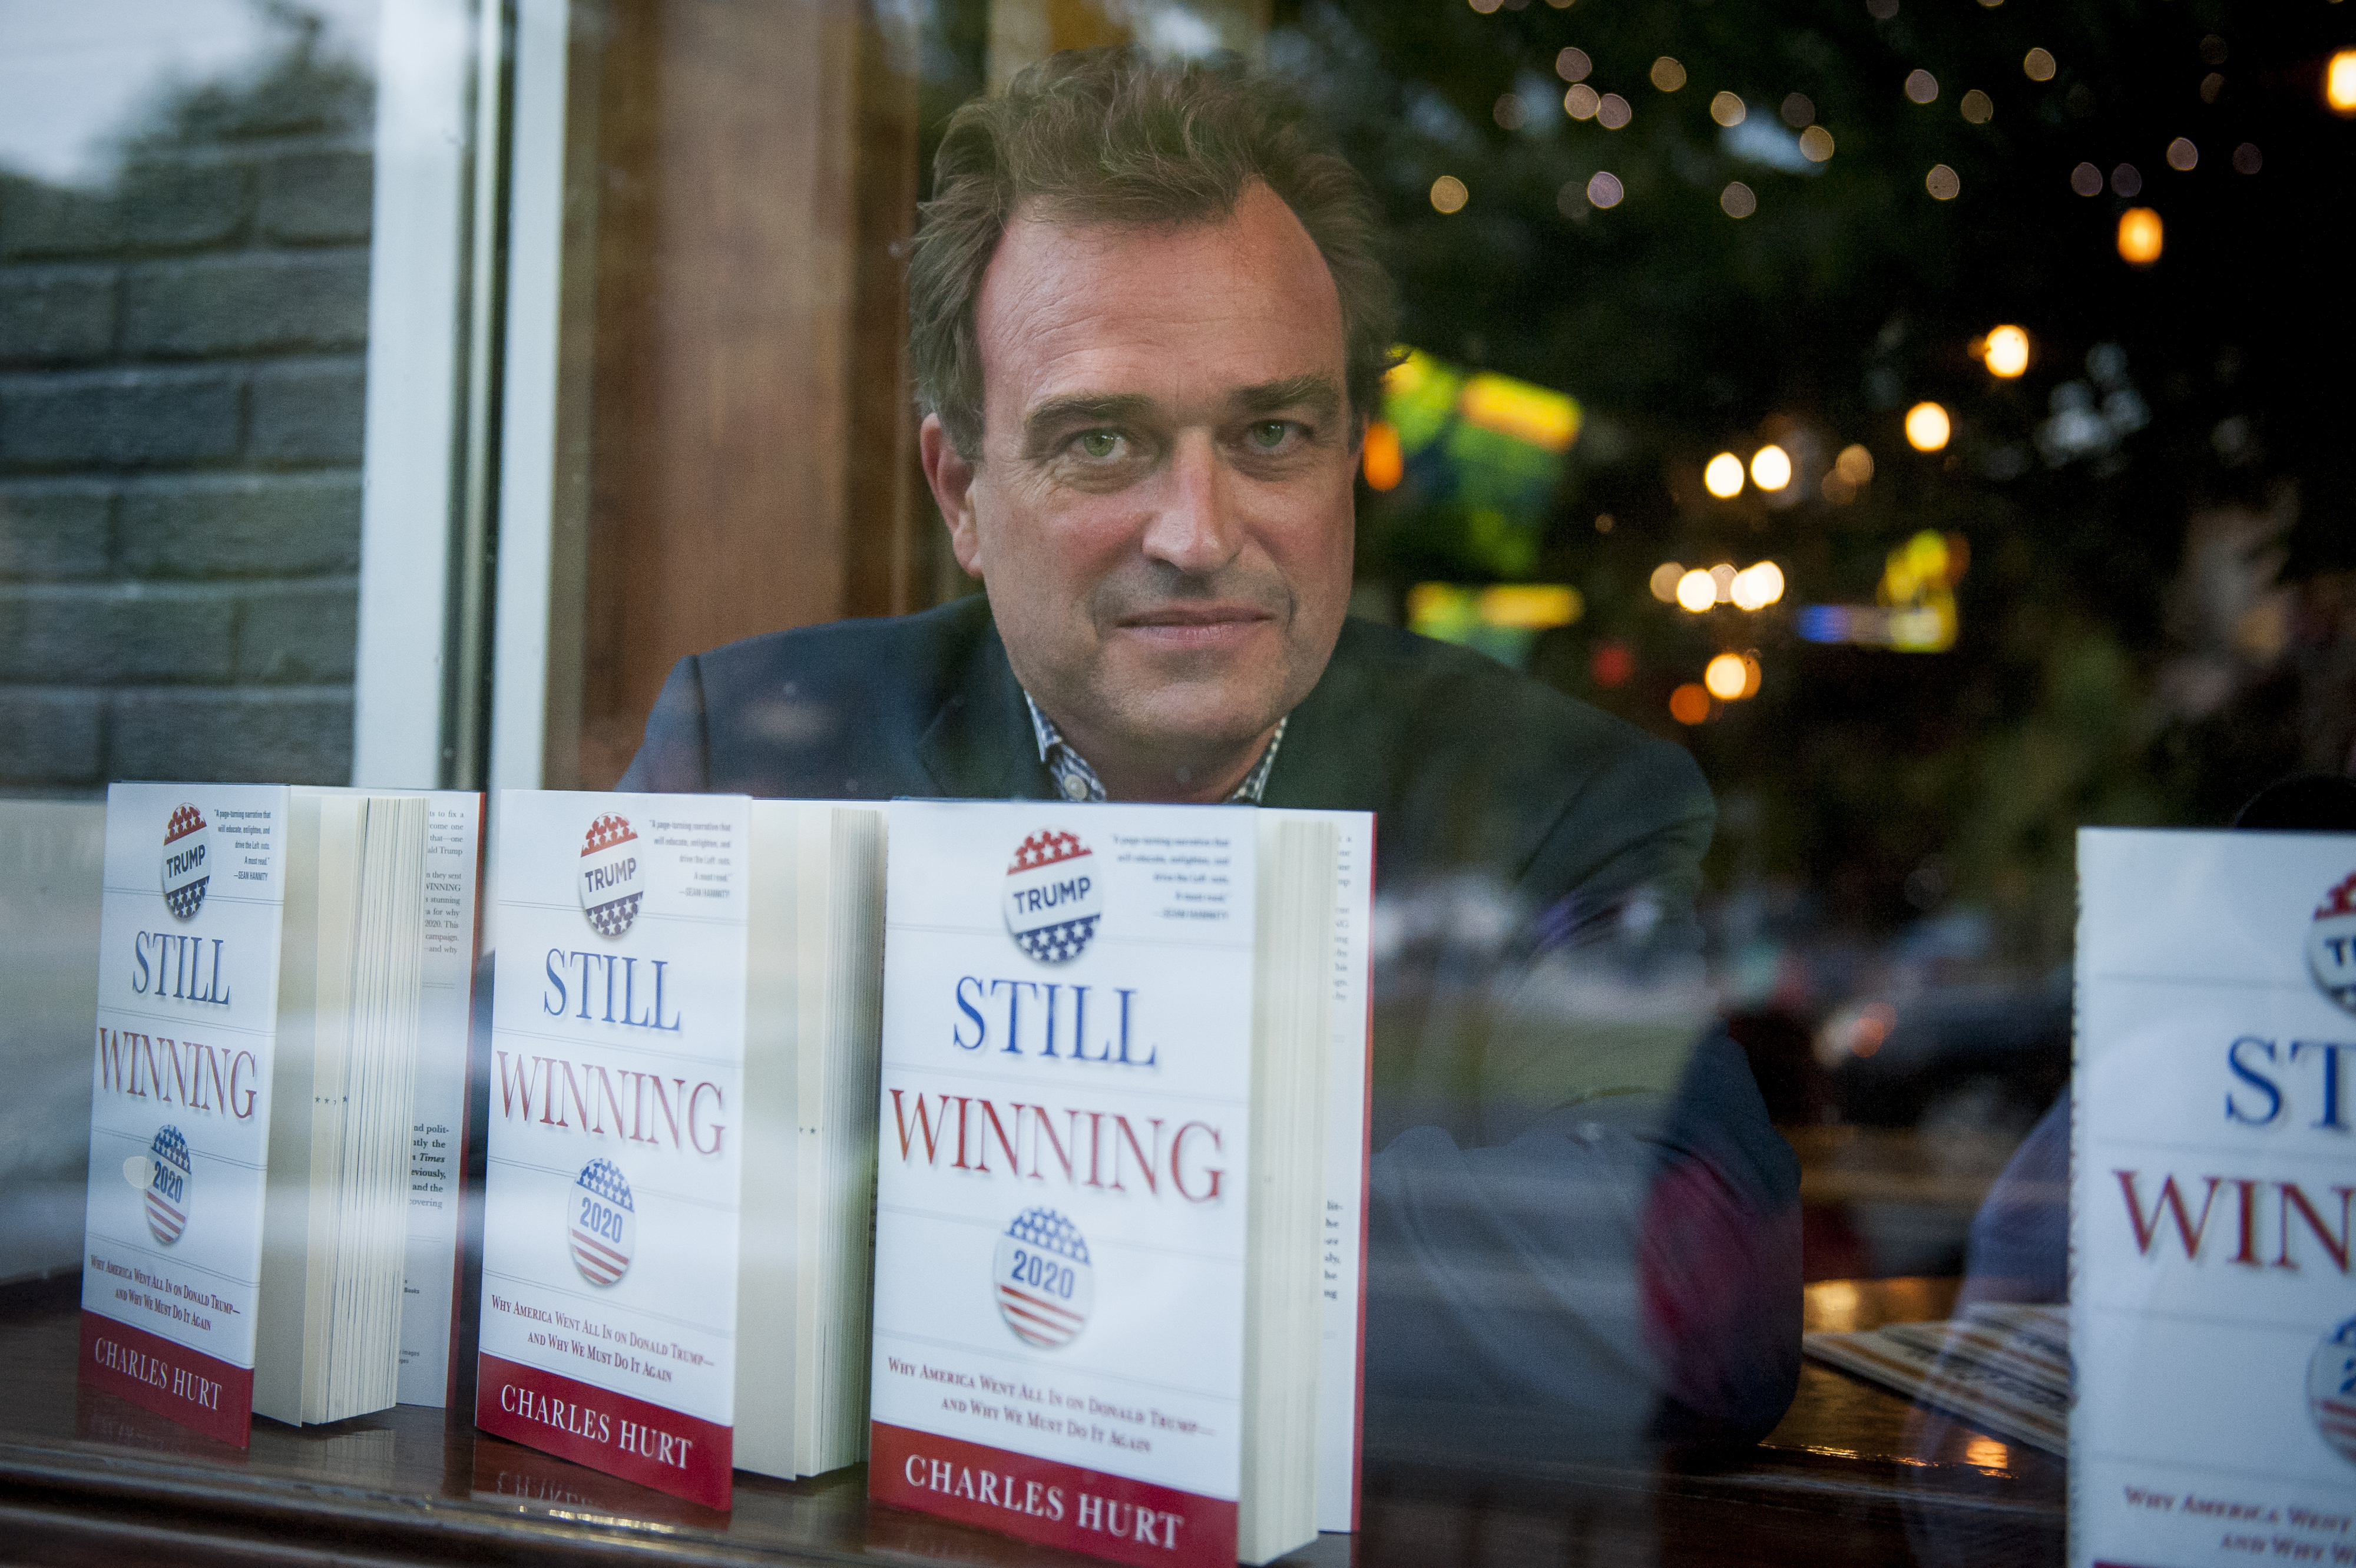 Washington Times editor Charles Hurt explains why to vote for Trump in new book 'Still Winning'